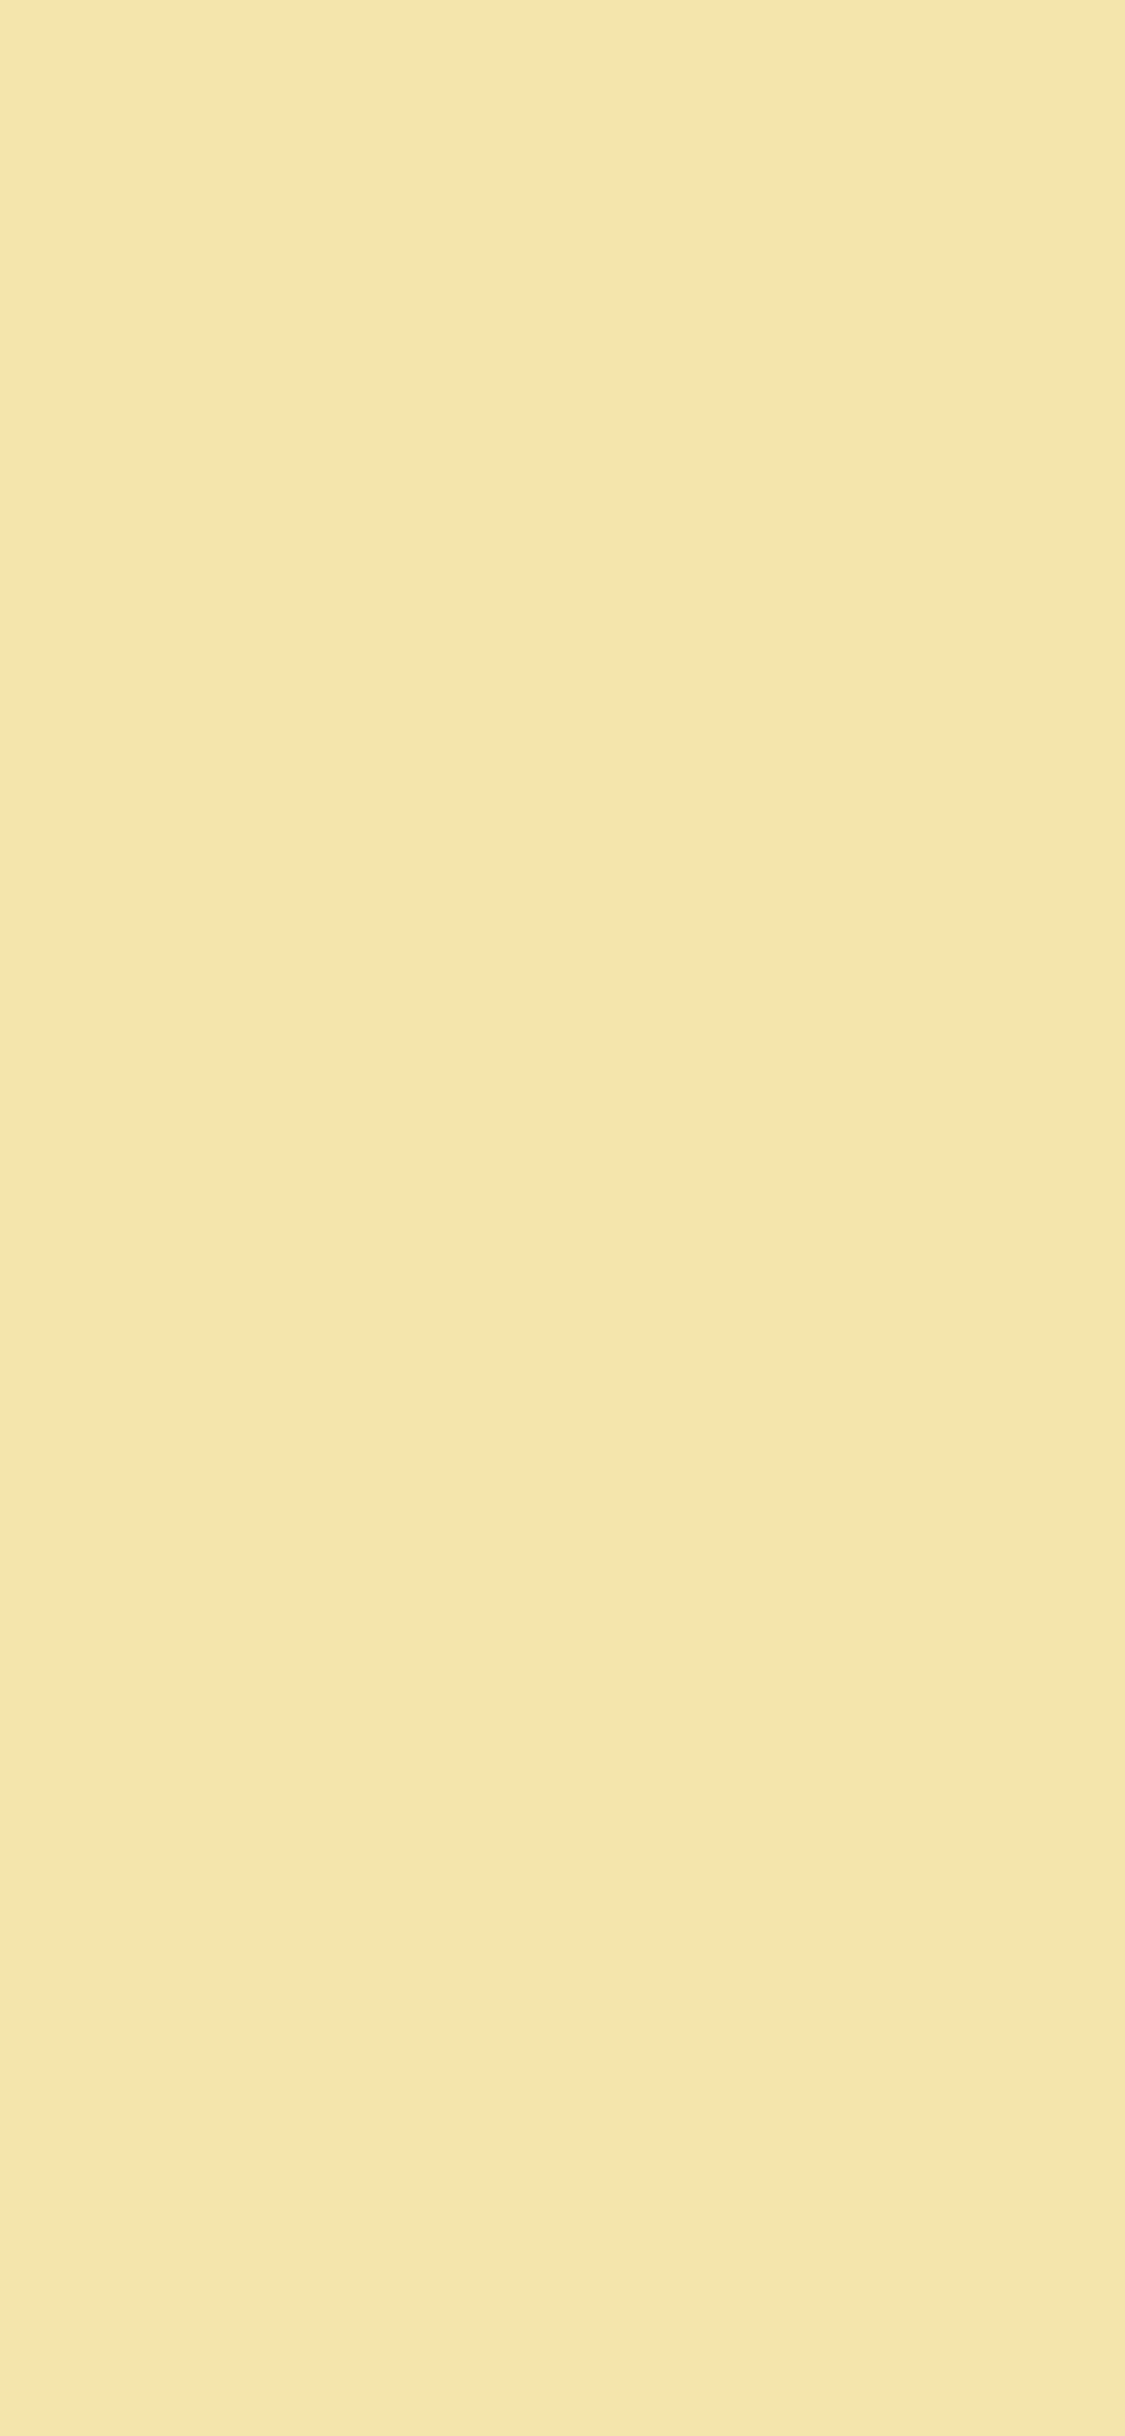 1125x2436 Medium Champagne Solid Color Background